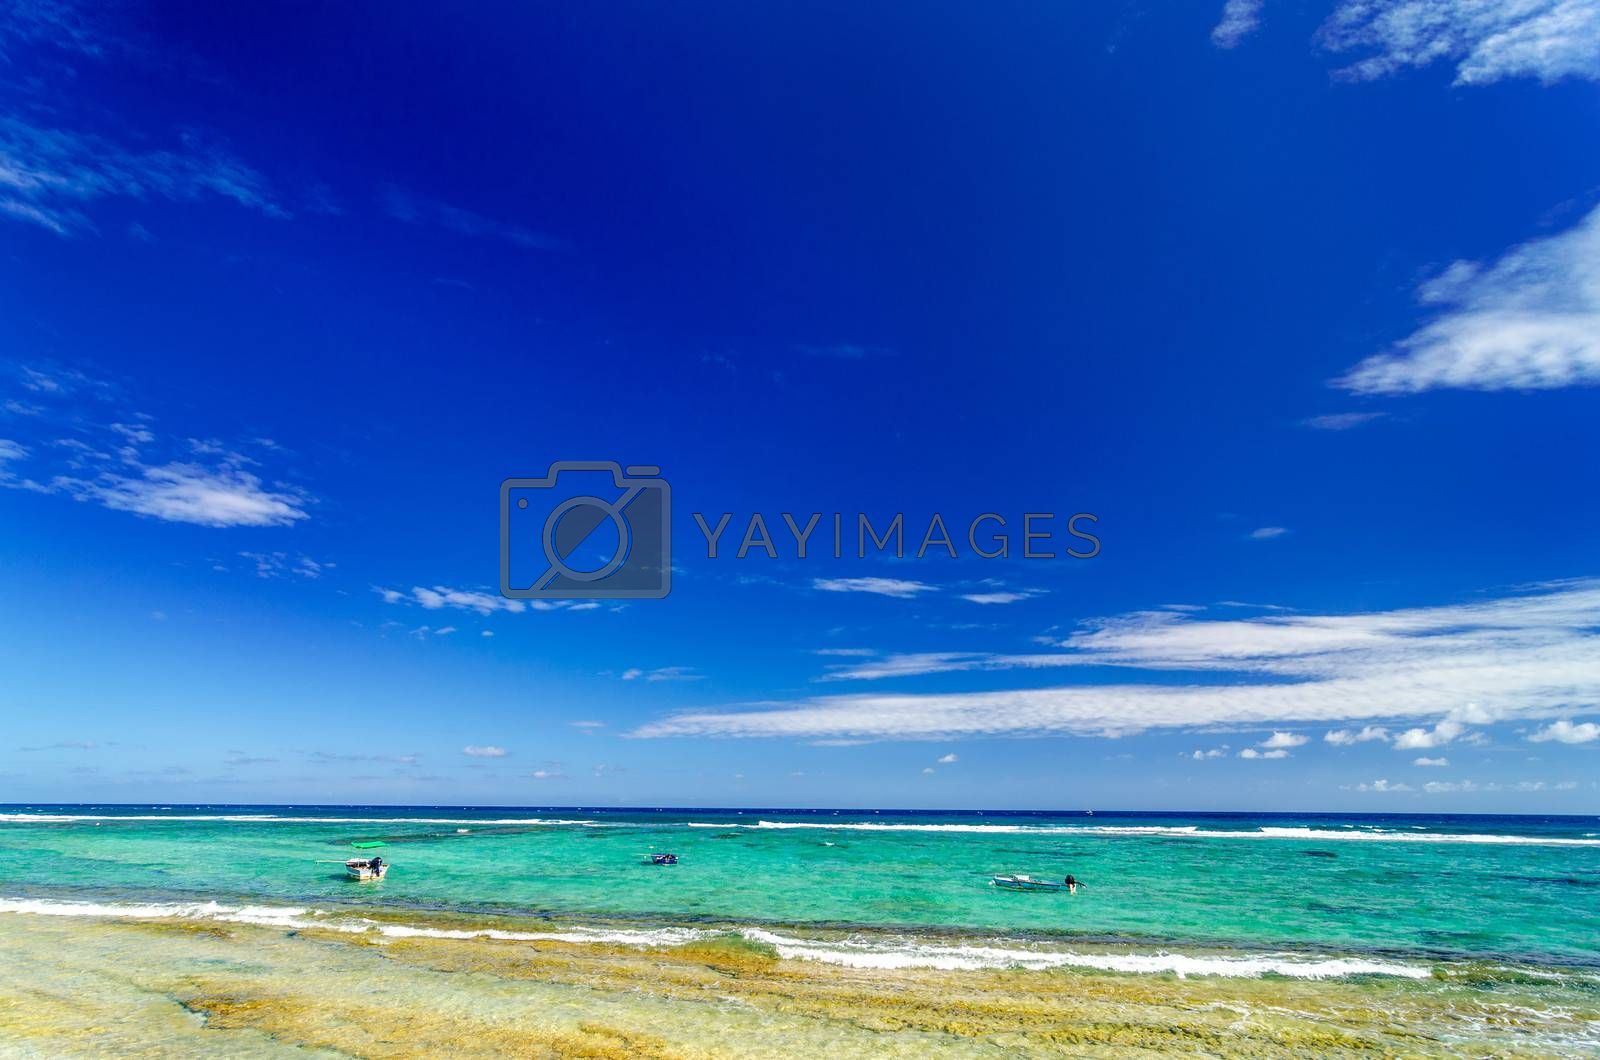 View of boats on the Caribbean Sea on the island of San Andres y Providencia, Colombia